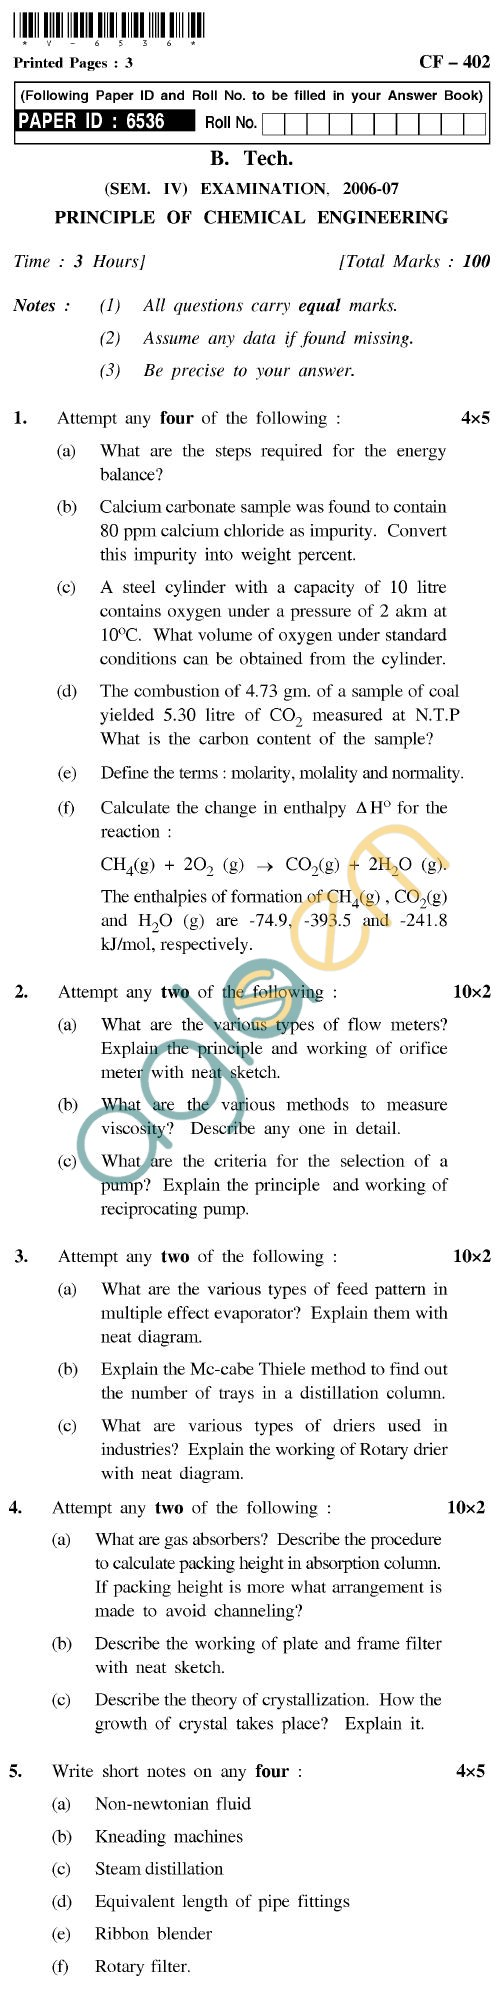 UPTU B.Tech Question Papers - CF-402 - Principle of Chemical Engineering